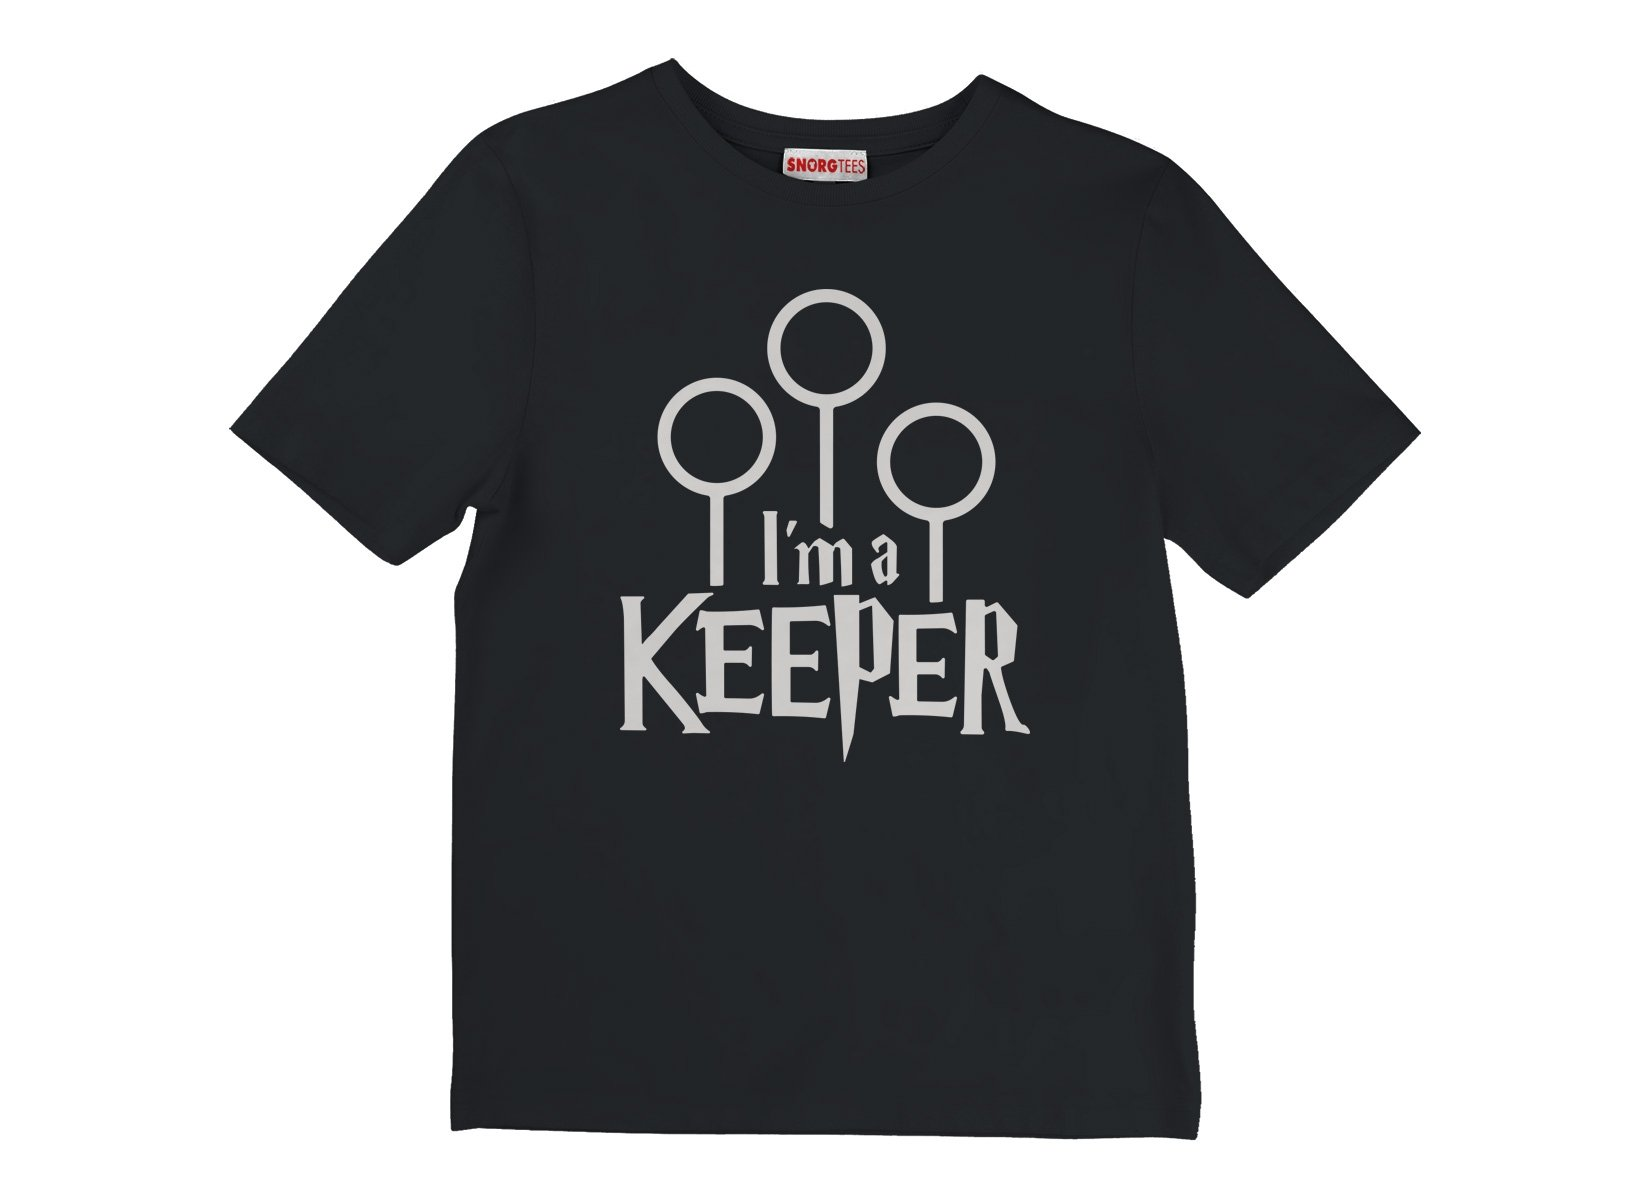 I'm A Keeper on Kids T-Shirt